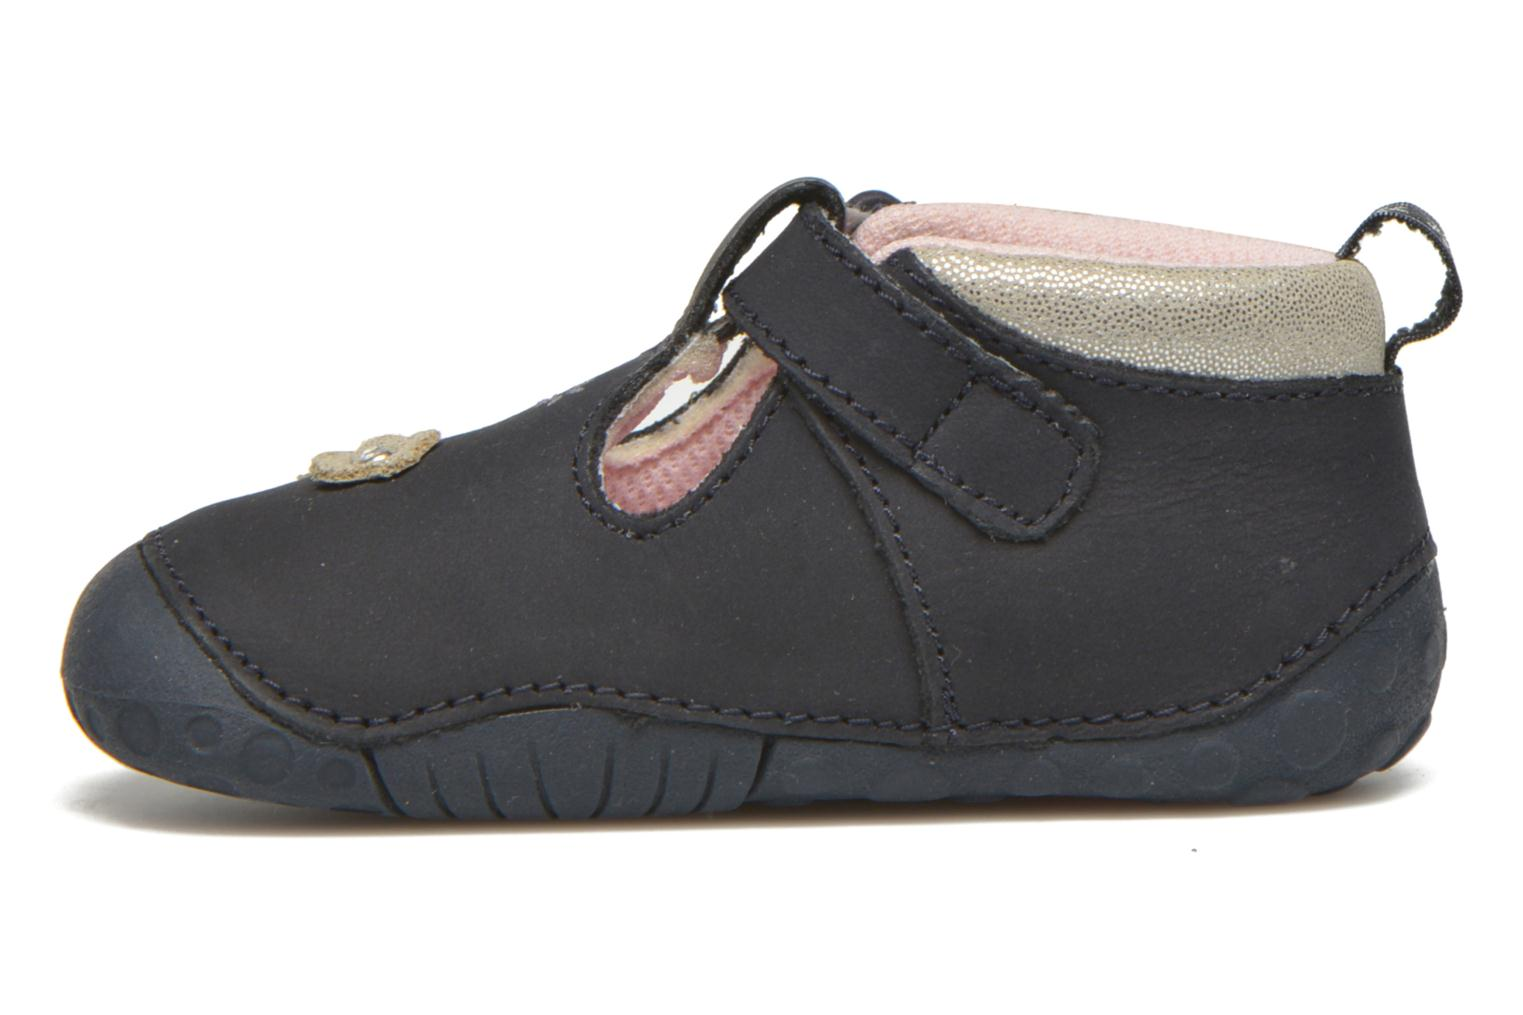 Mayflower Navy nubuck